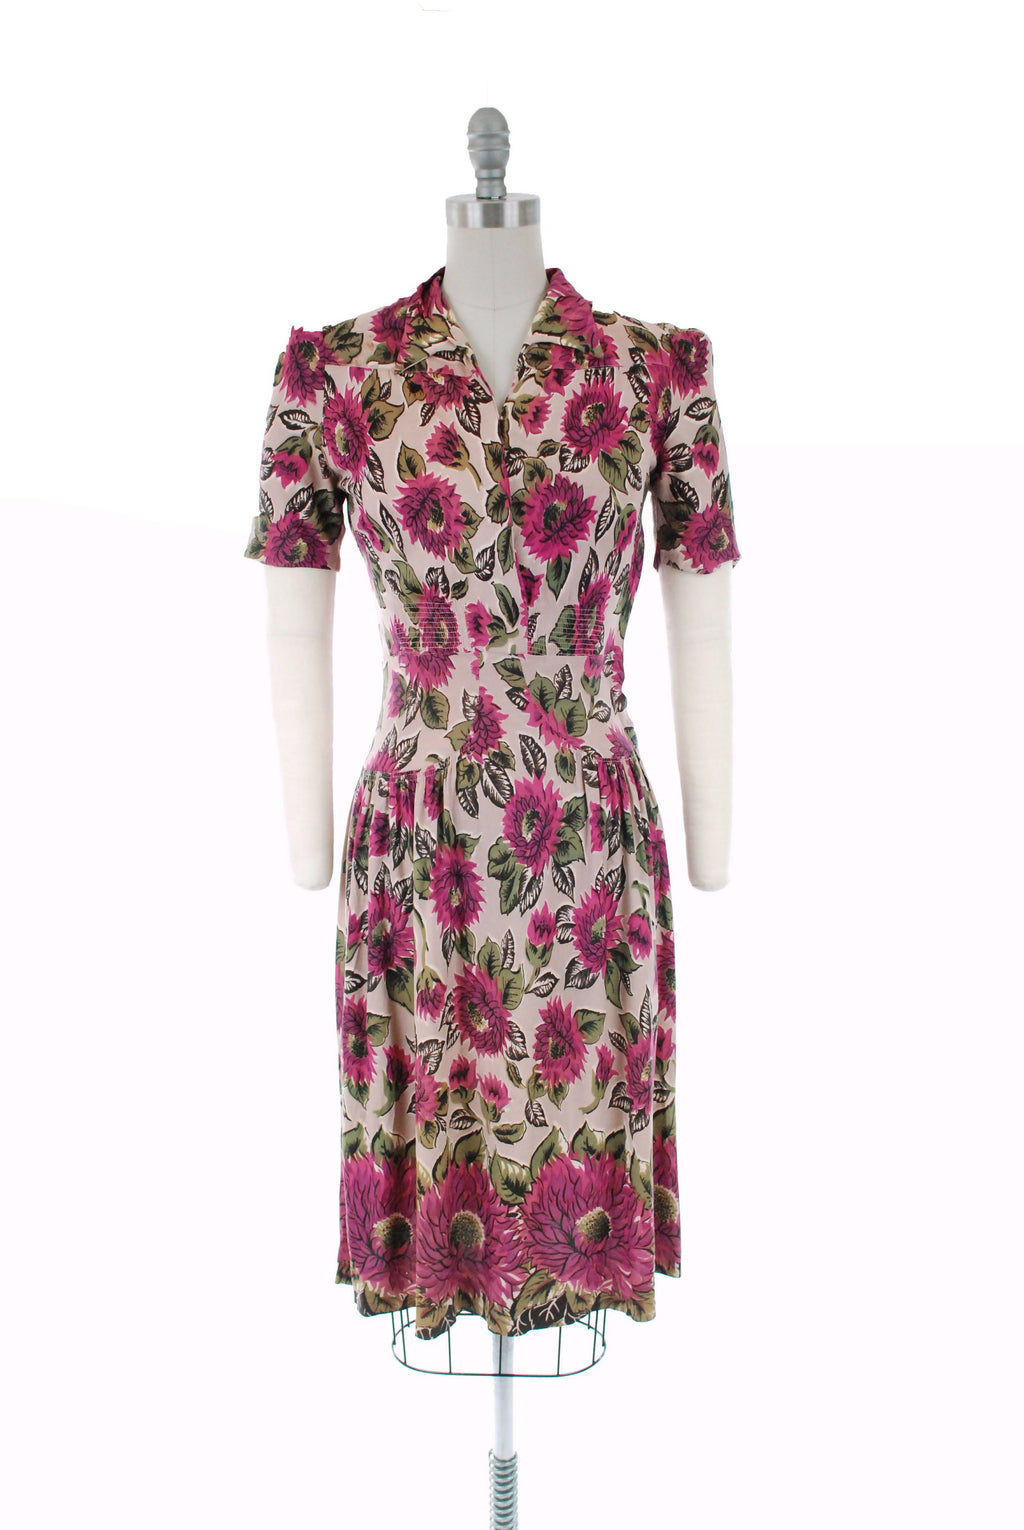 1940s Vintage Dress - Saturated 40s Rayon Jersey Day Dress in with Fuchsia and Purple Chrysanthemum Border Print